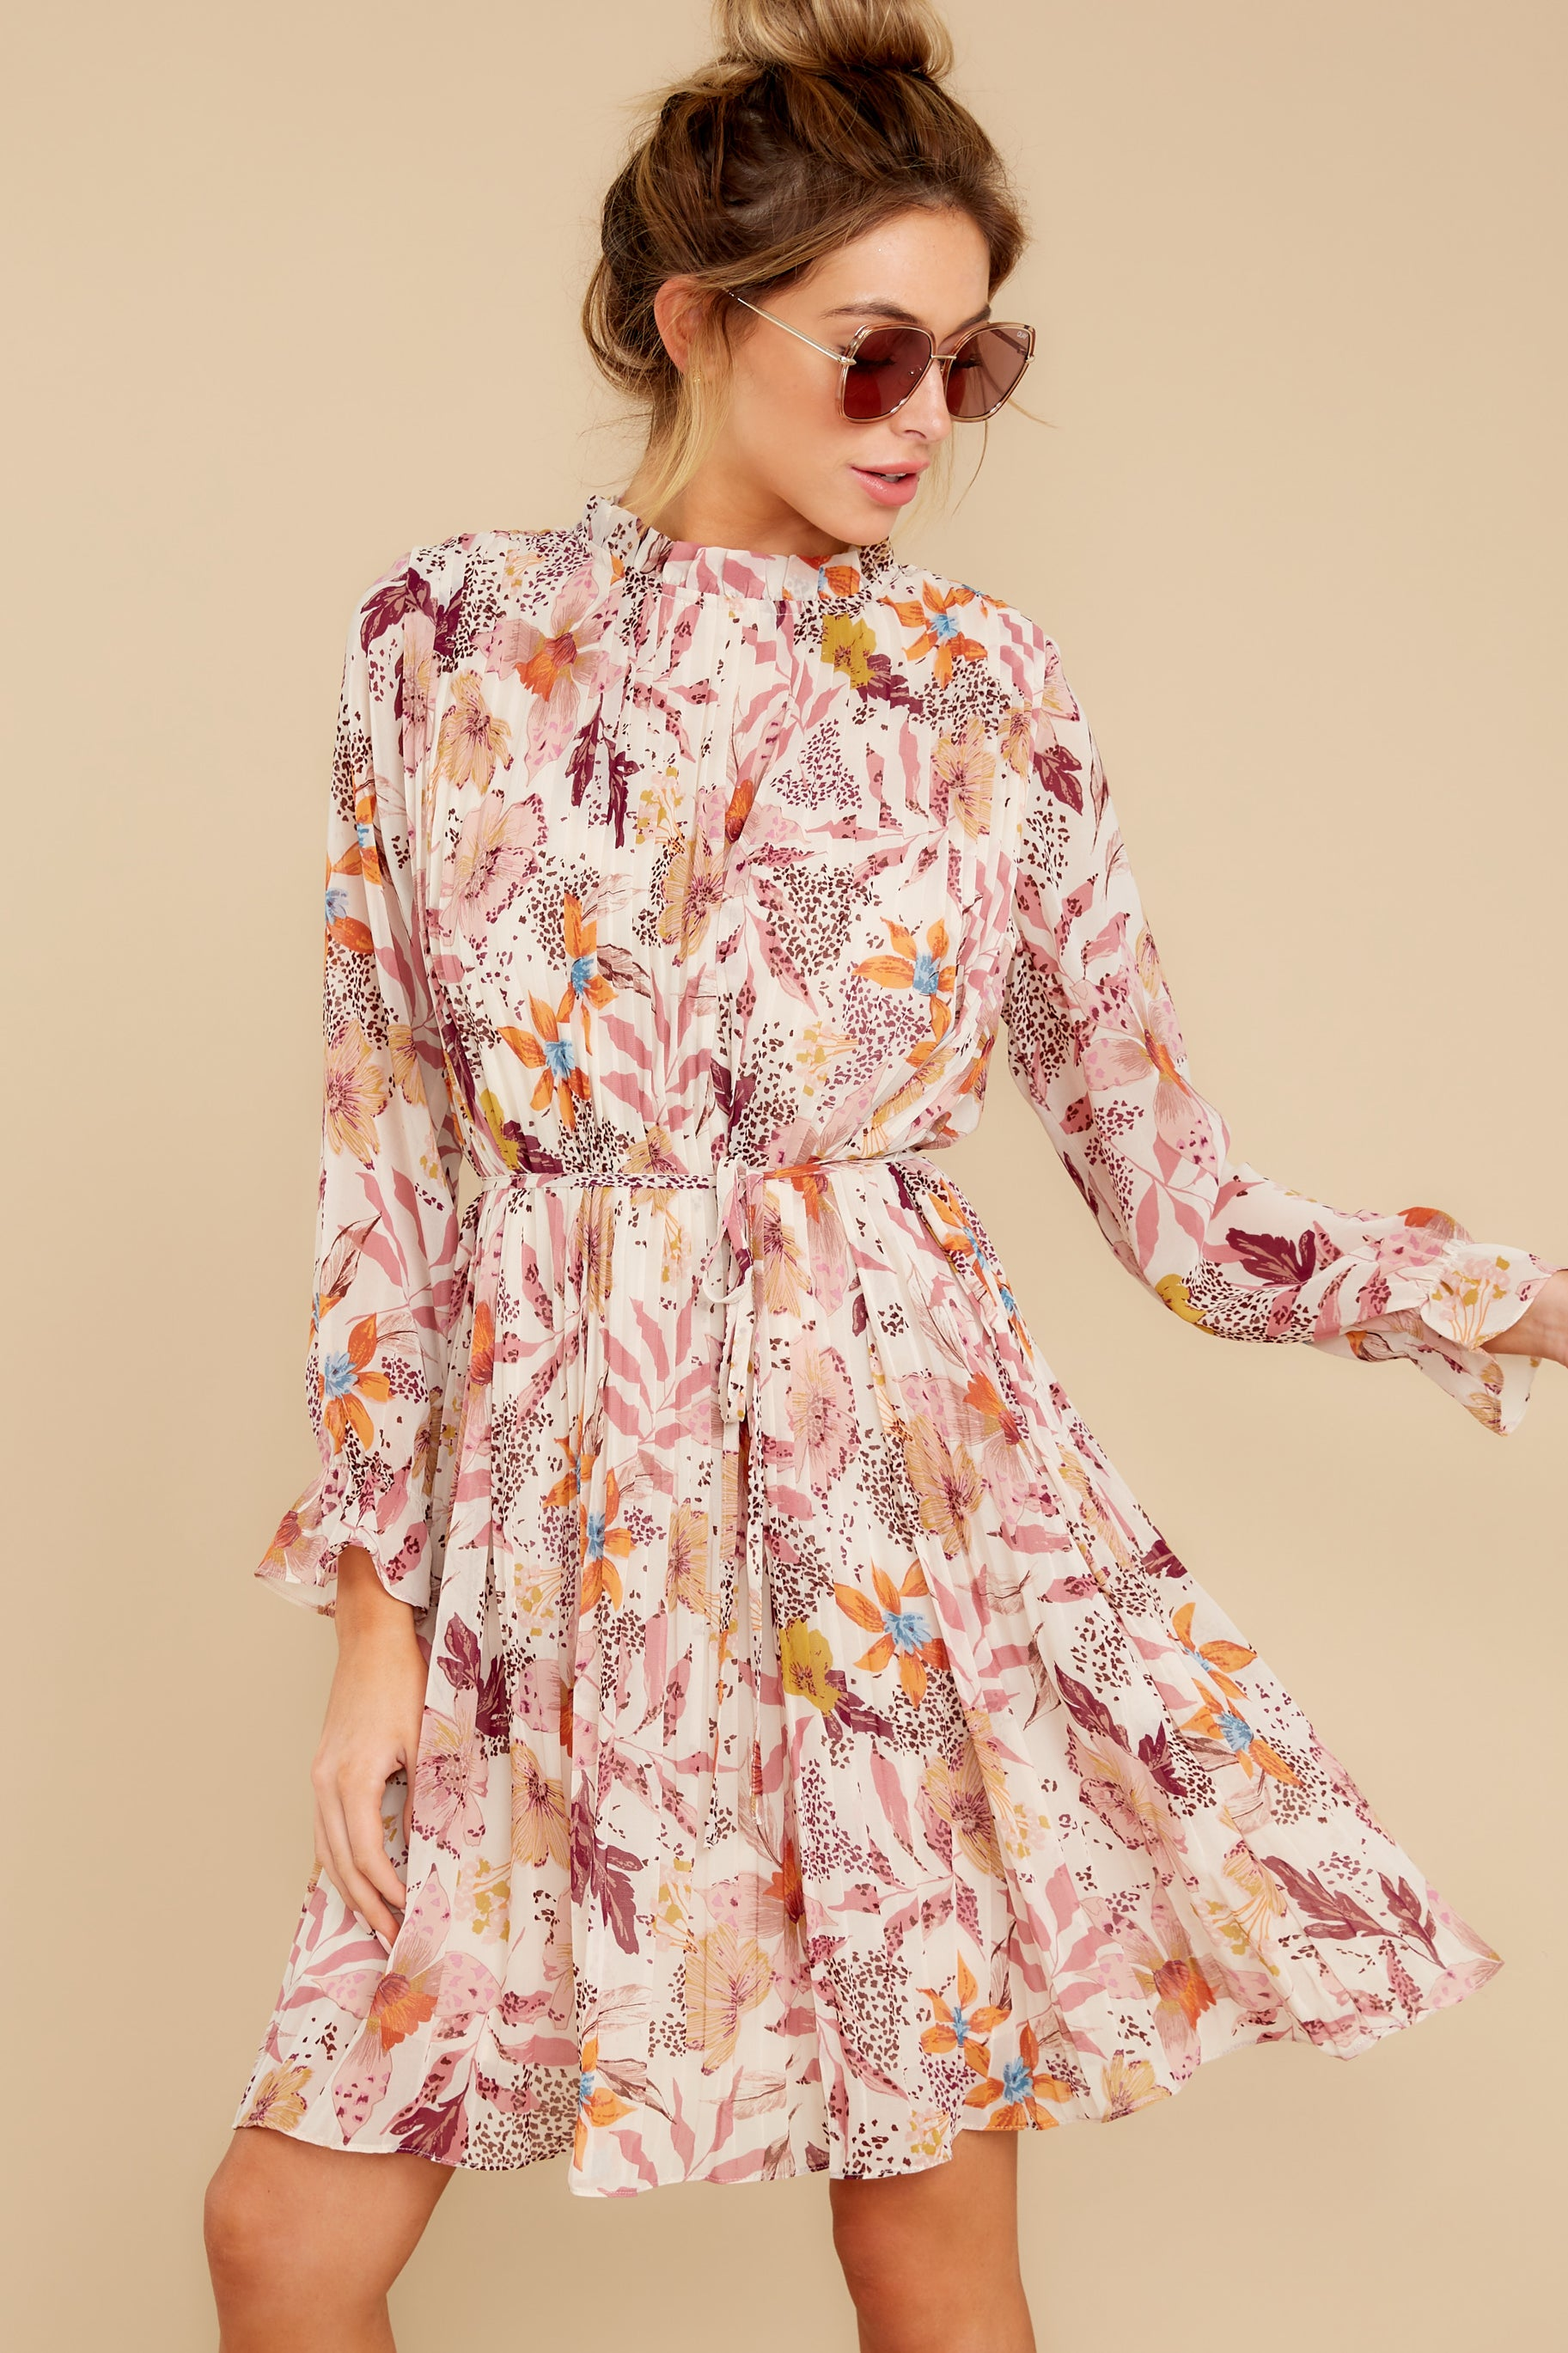 7 Straight For Your Heart Ivory Floral Print Dress at reddressboutique.com